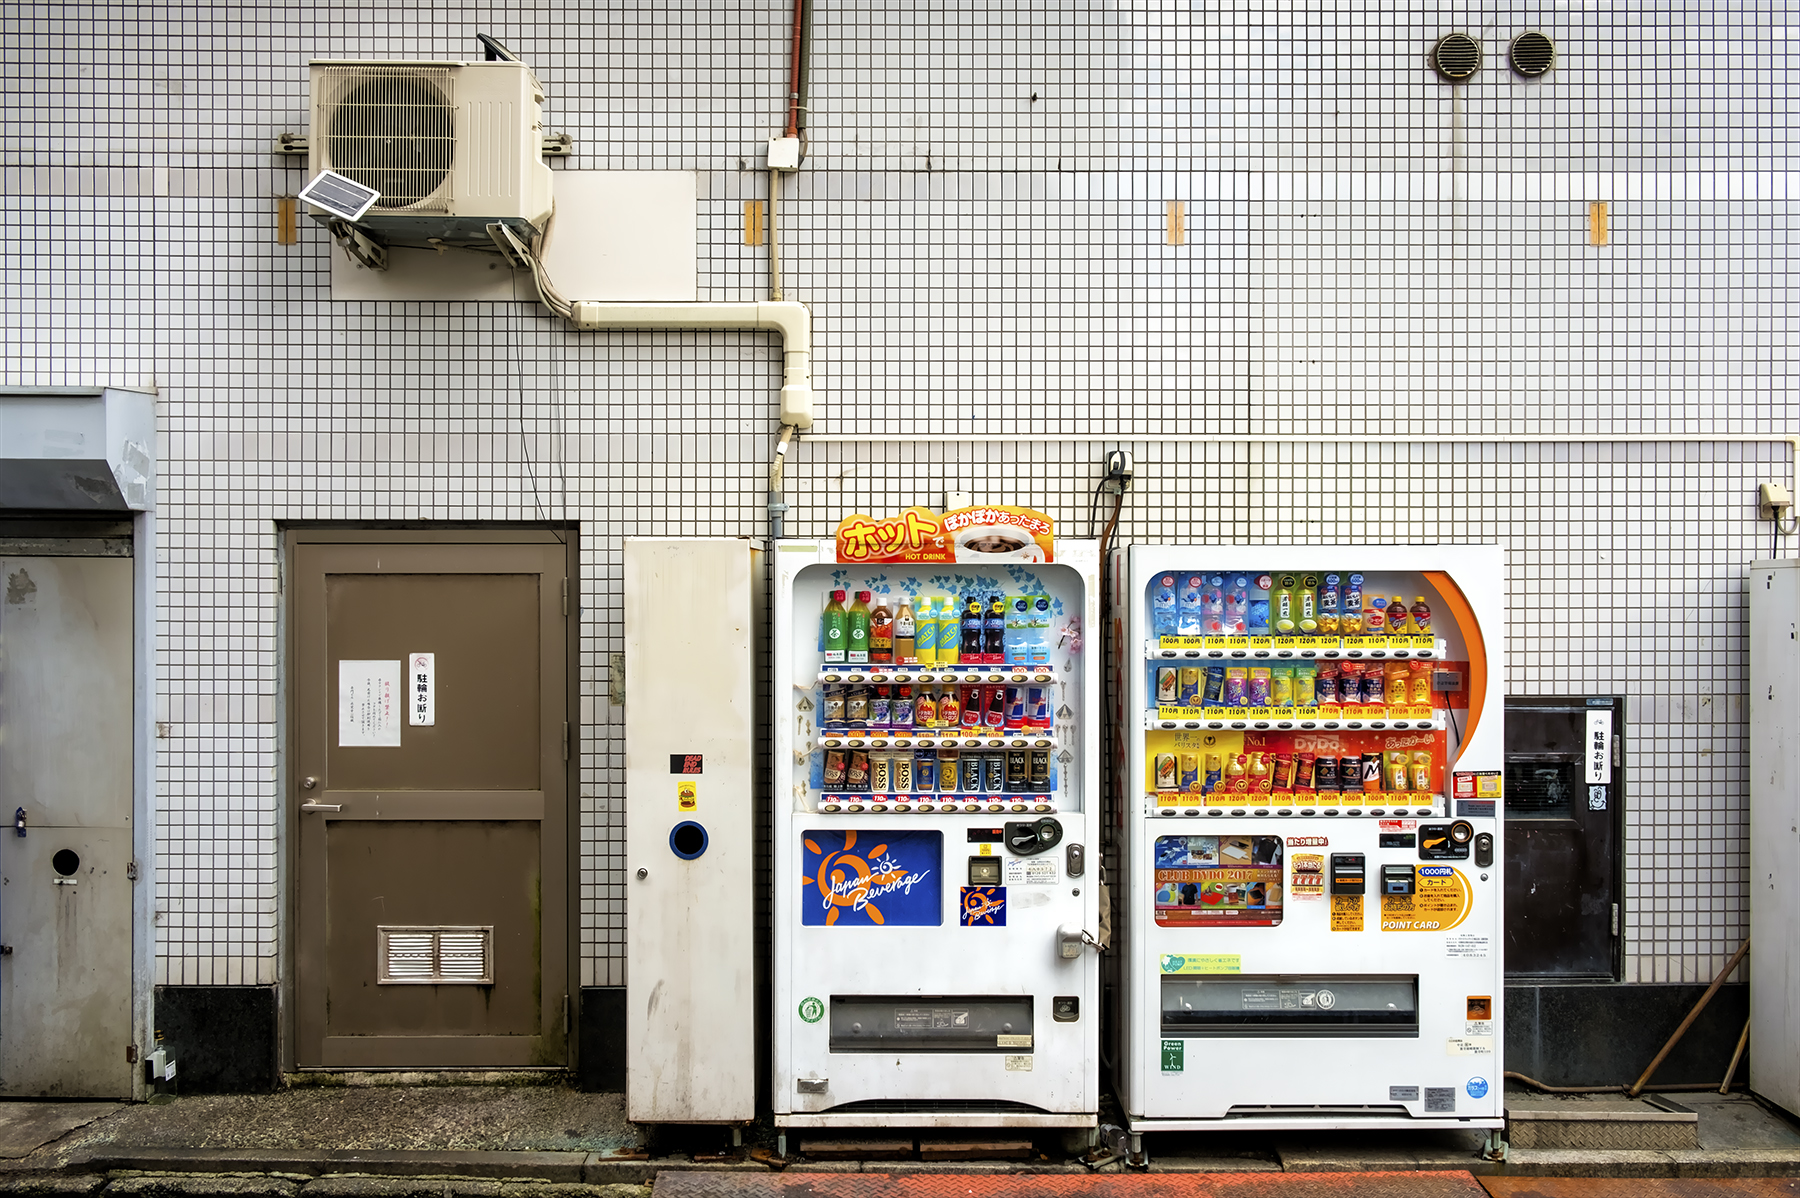 Doug_Caplan_Japanese-Vending-Machines_Untitled_01.jpg